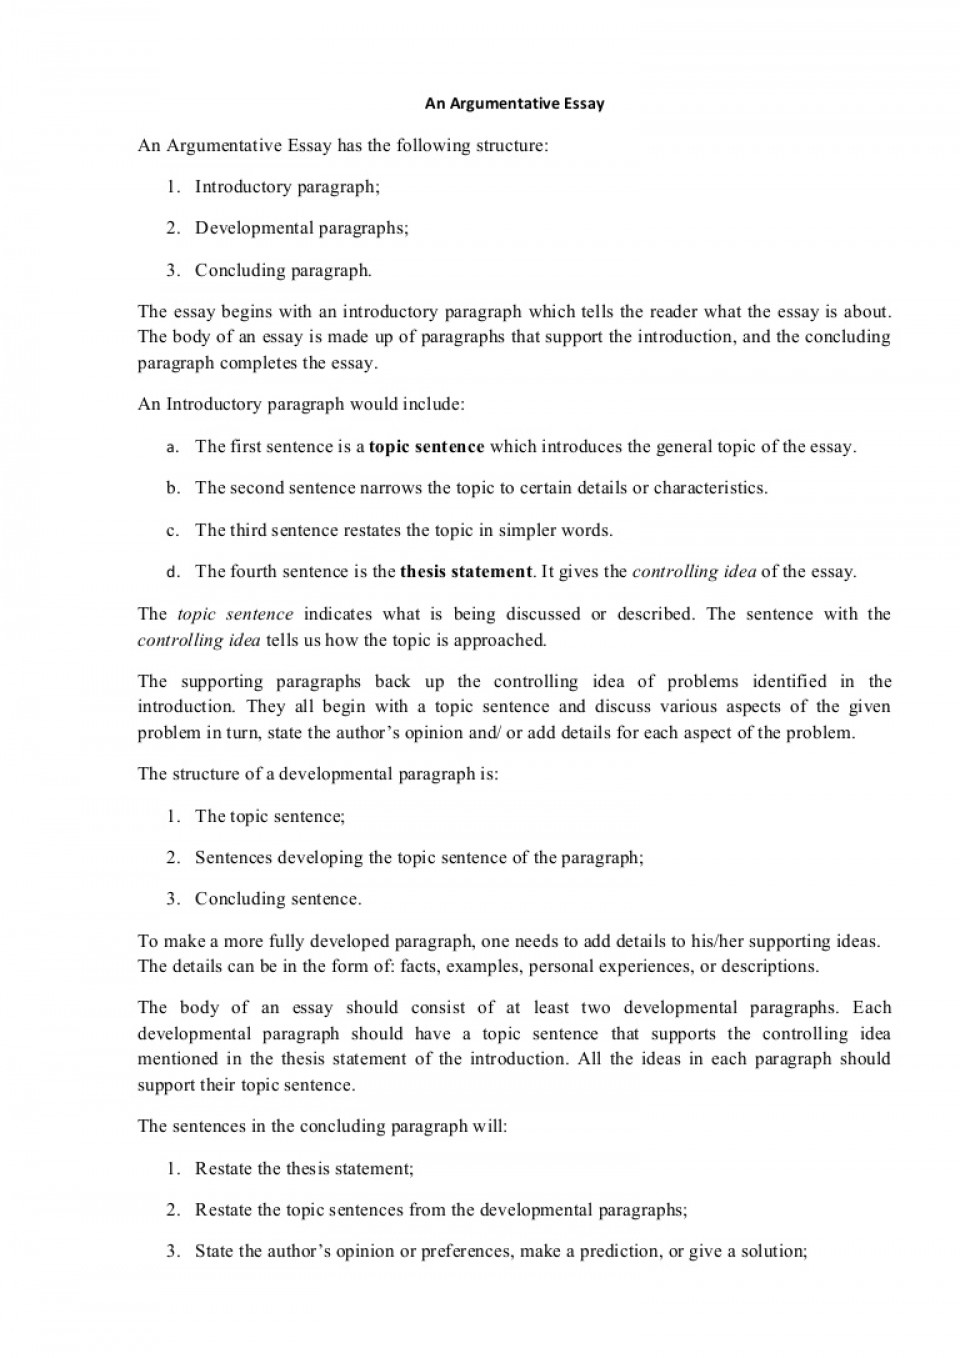 014 Example Of Argumentative Essay Conclusion Argumentativeessaystructure Phpapp01 Thumbnail Beautiful Introduction Body And 960